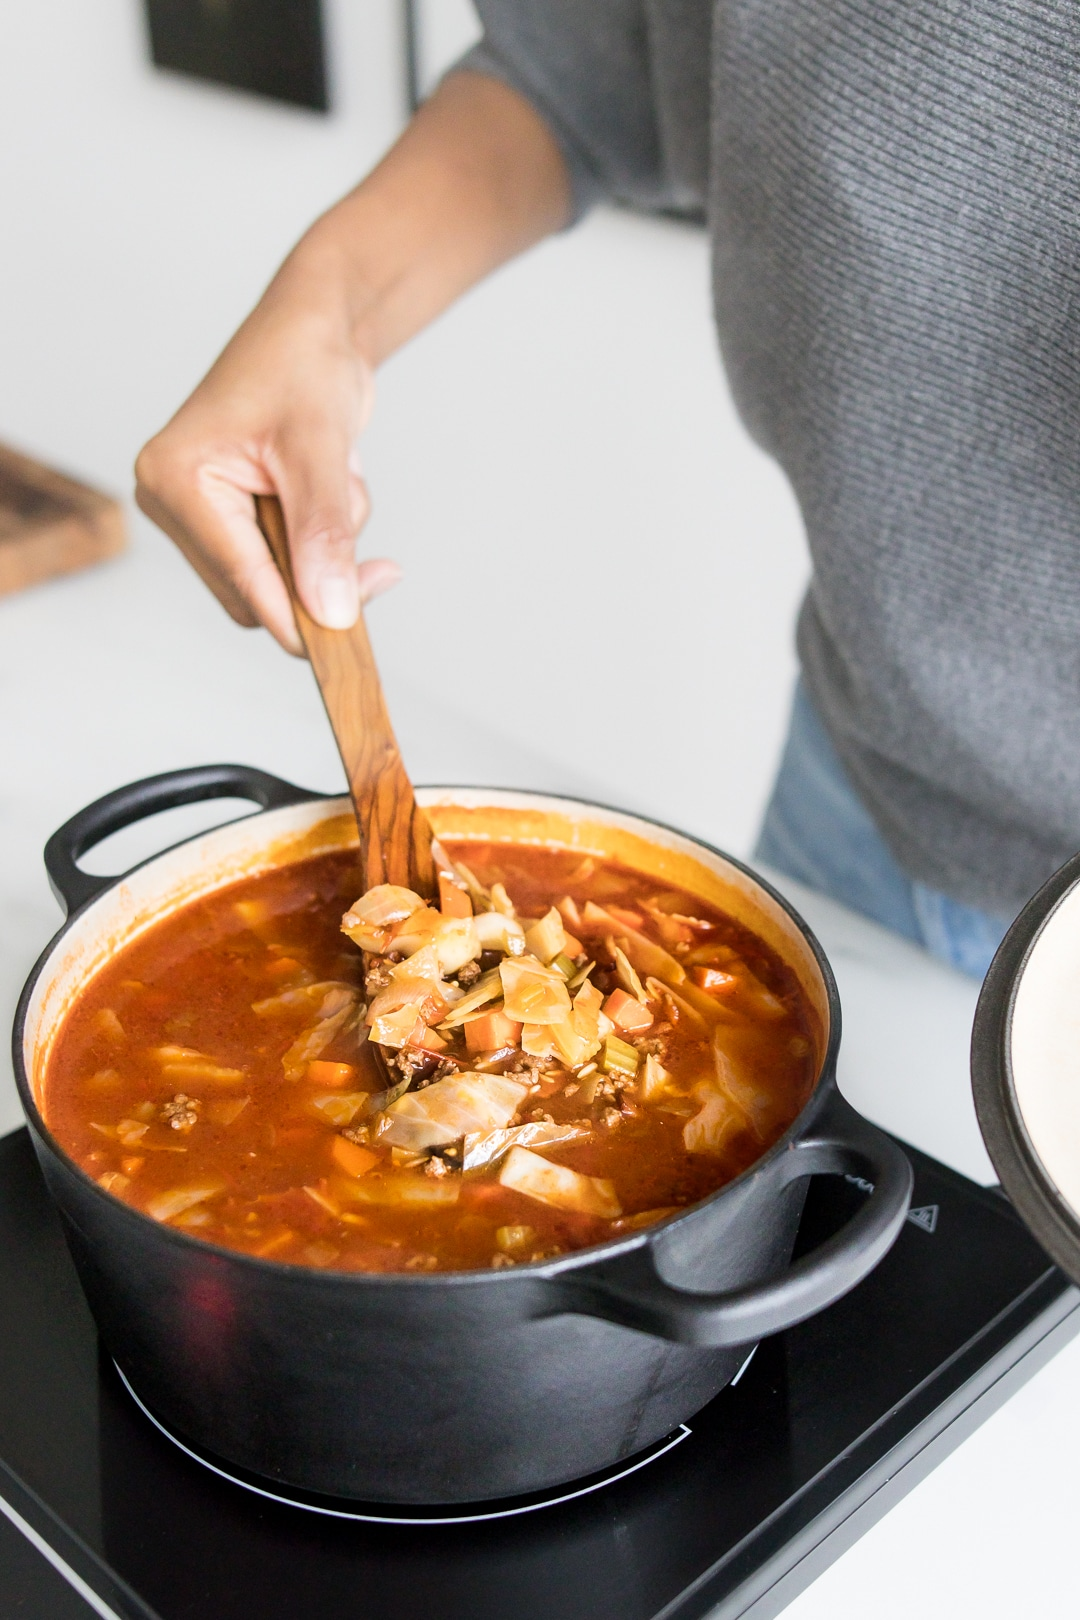 Mystique stirring soup while it's cooking in black dutch oven pot